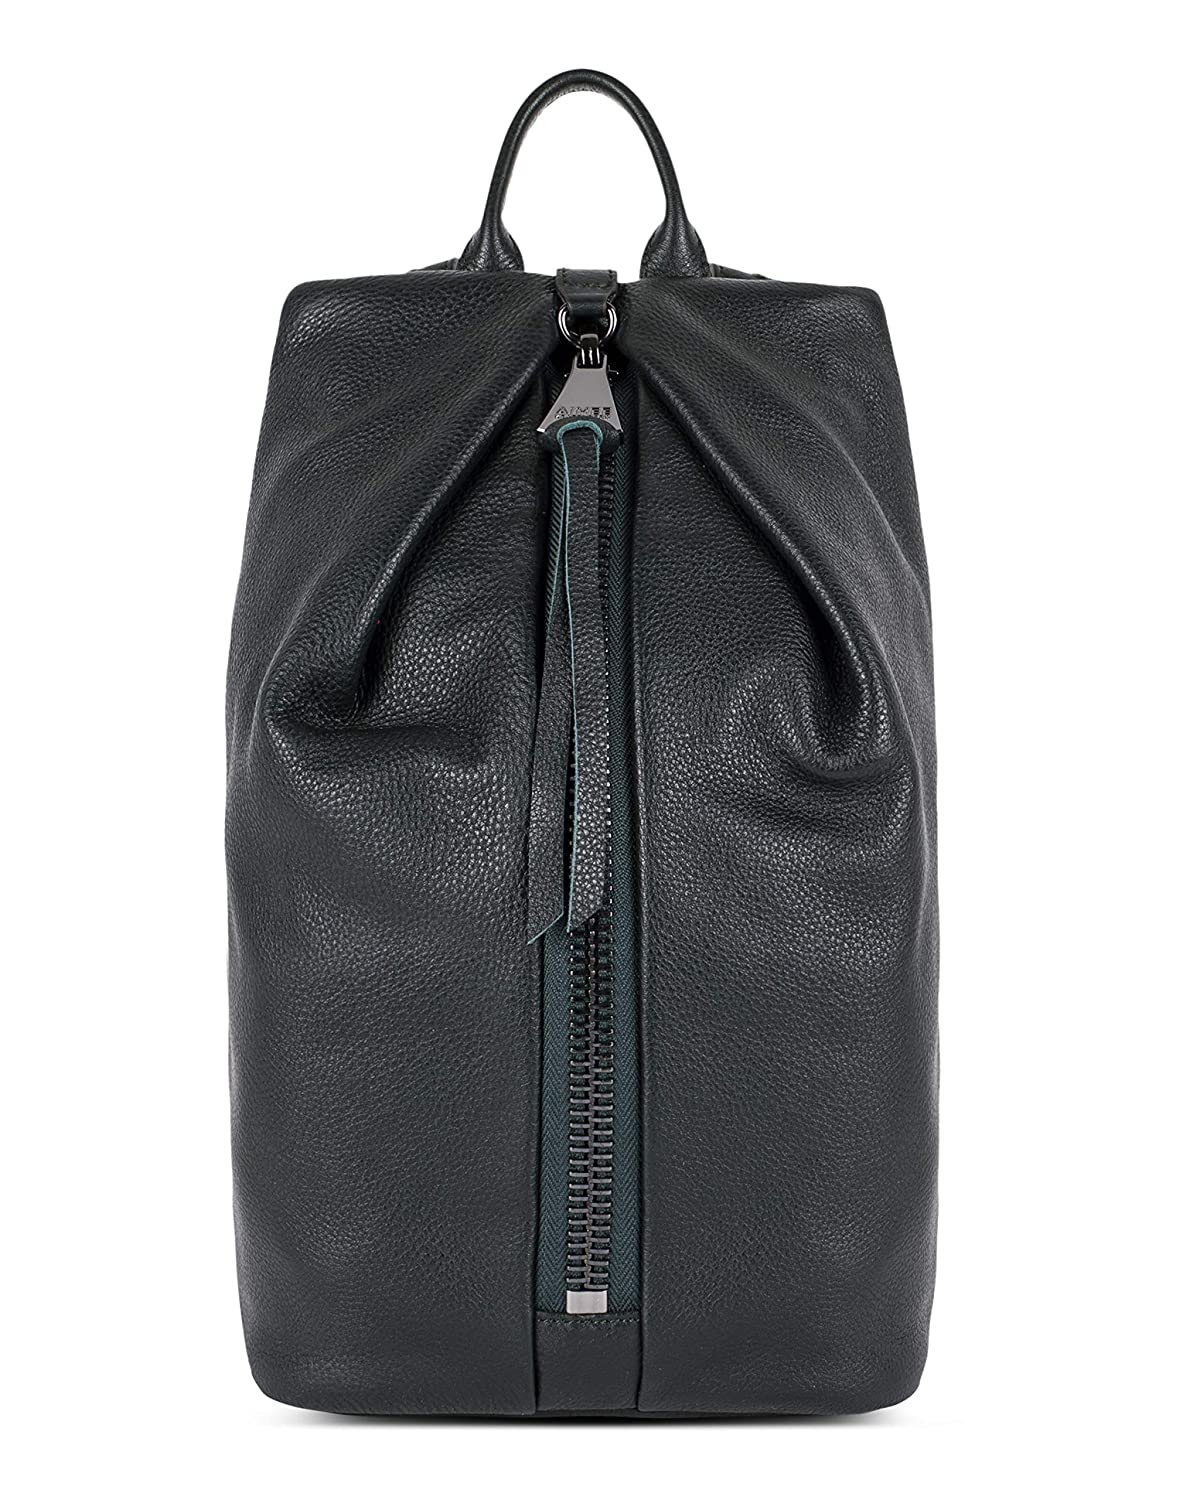 Image of Aimee Kestenberg Tamitha Backpack